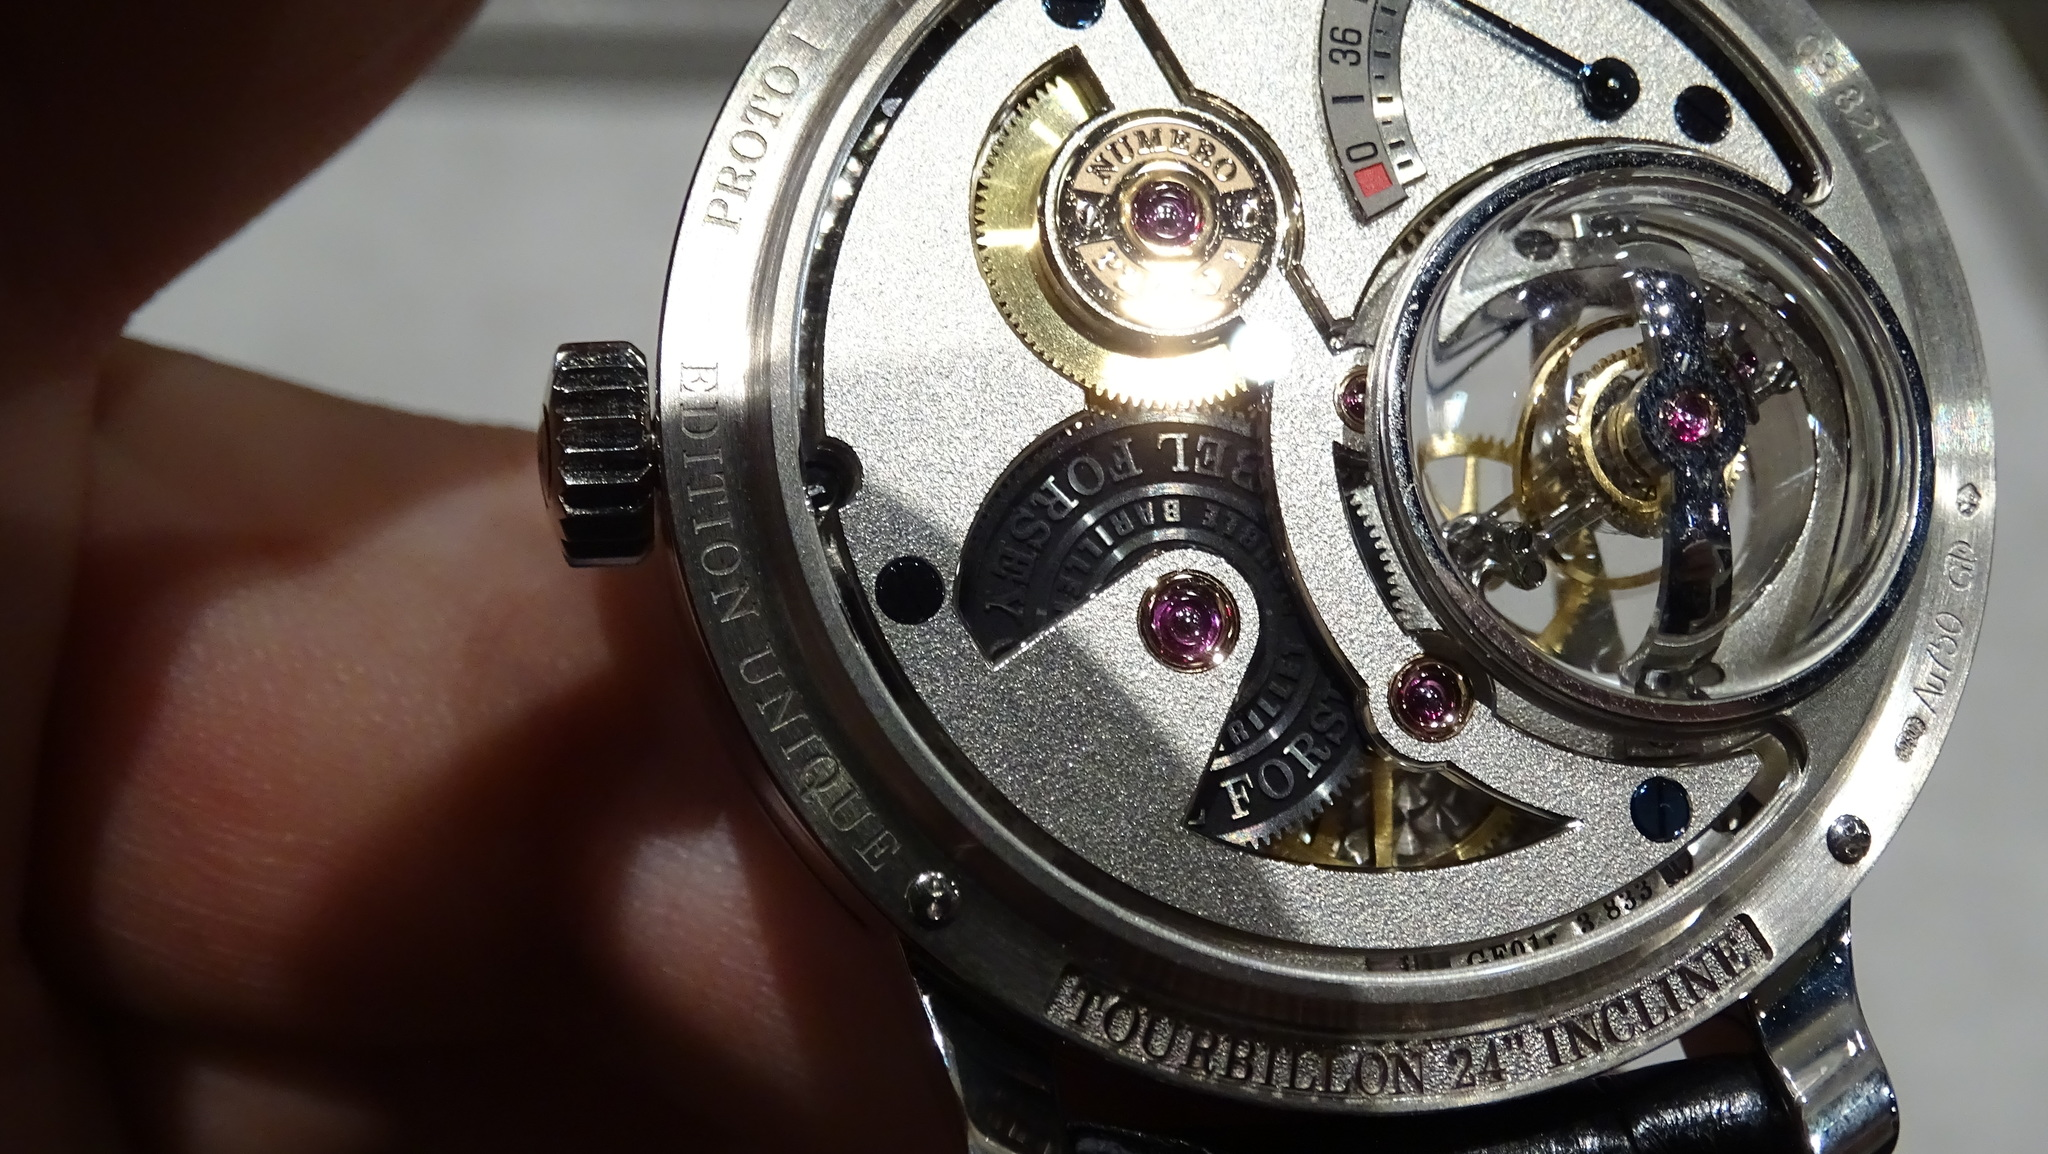 Greubel Forsey Tourbillon 24 Seconds Vision vista del reverso